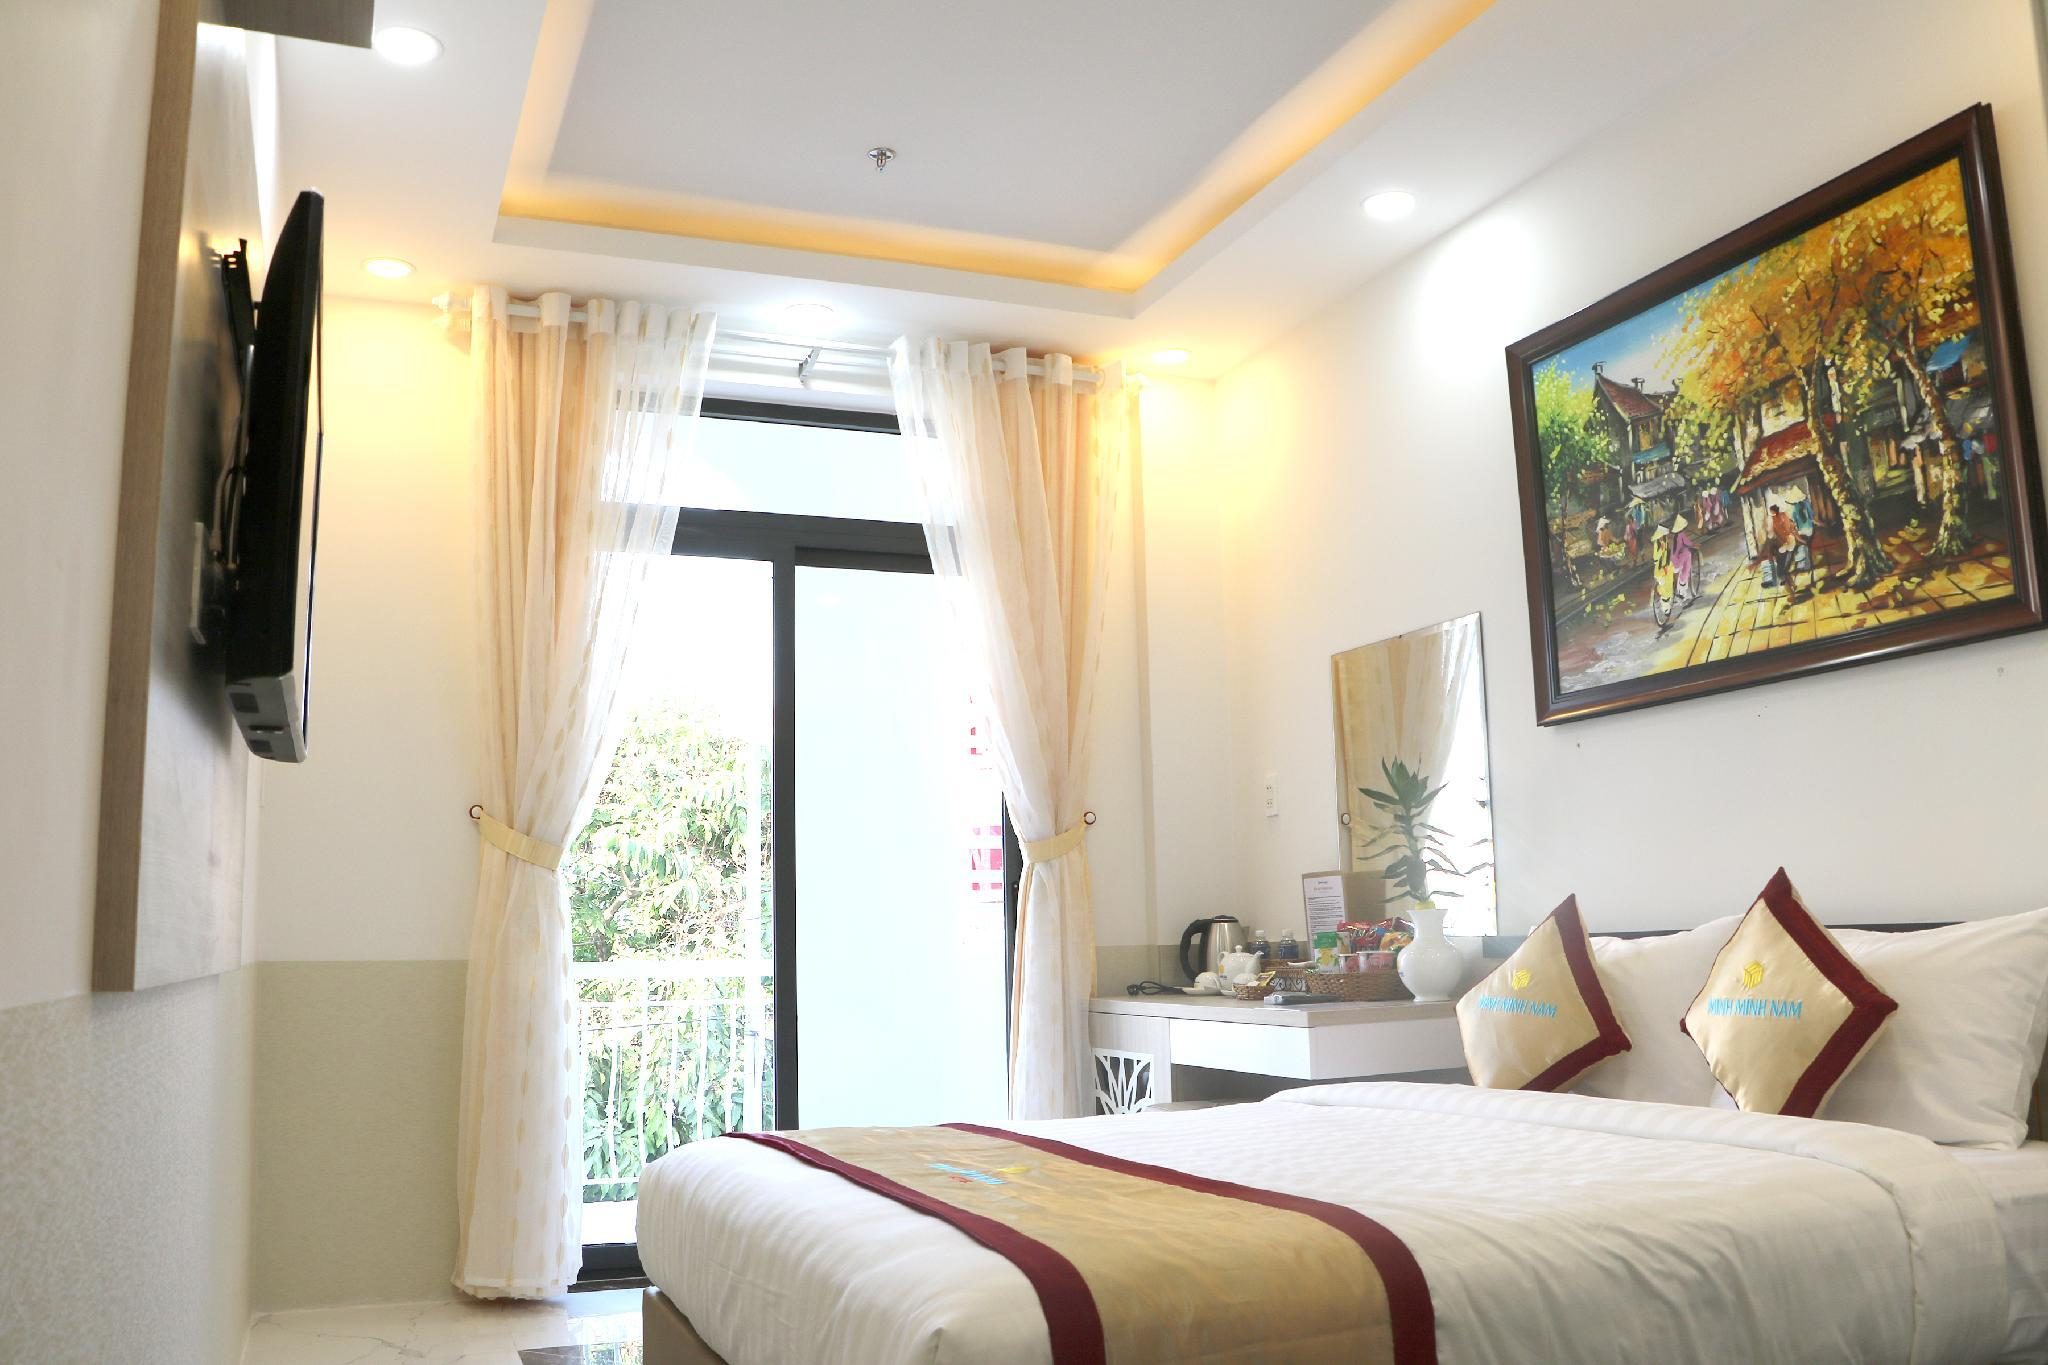 The room is quiet, clean and airy with balcony